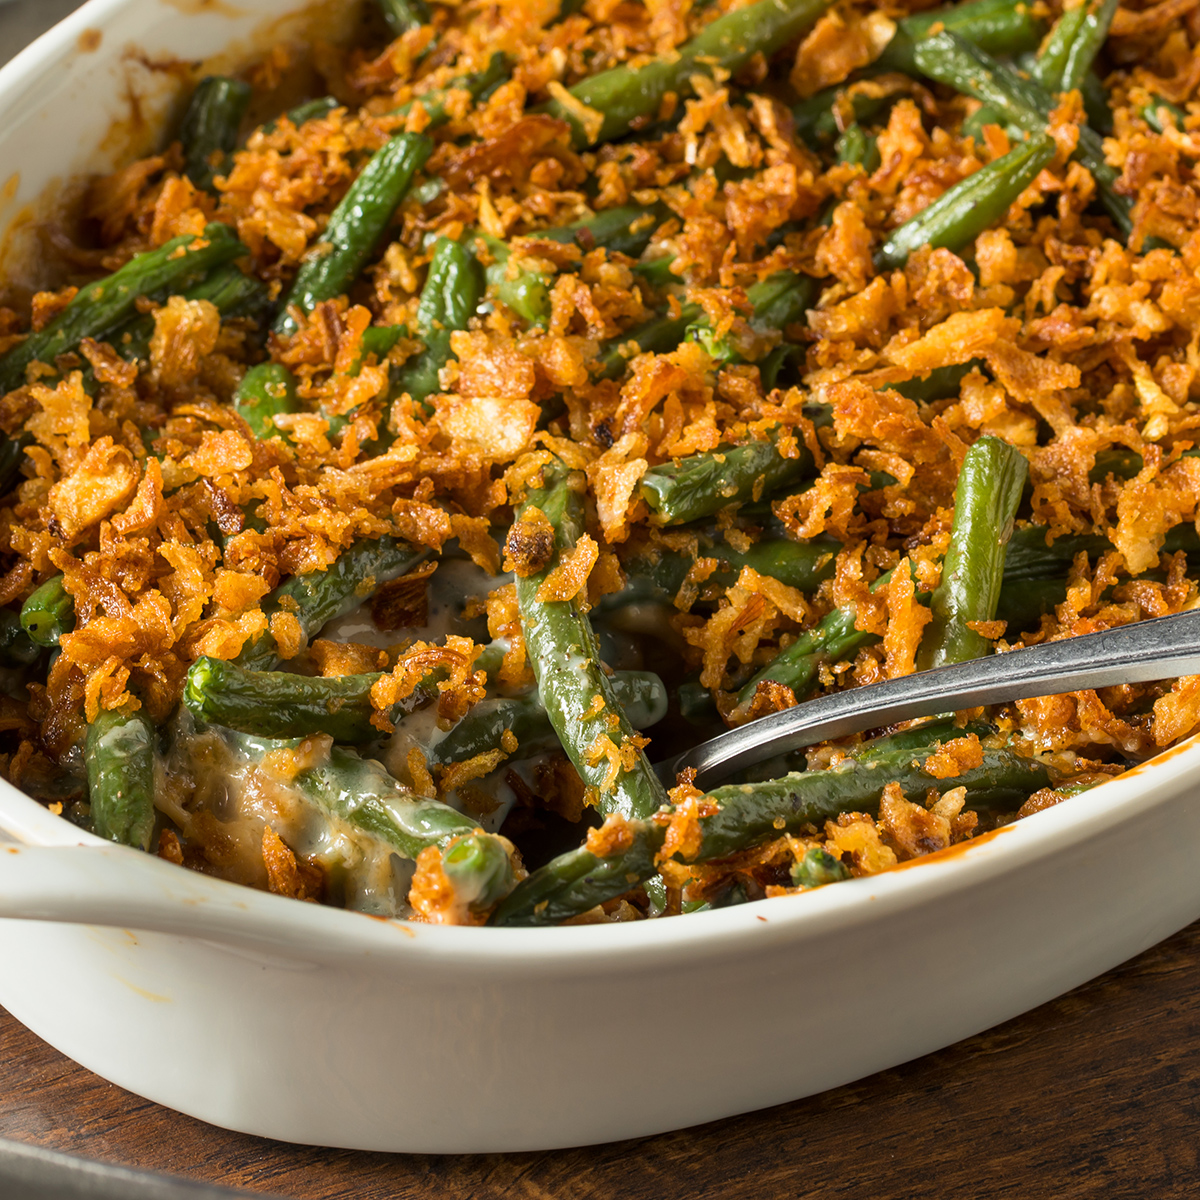 cheesy green bean casserole is one of the 21 Best Vegan Christmas Dinner Recipes